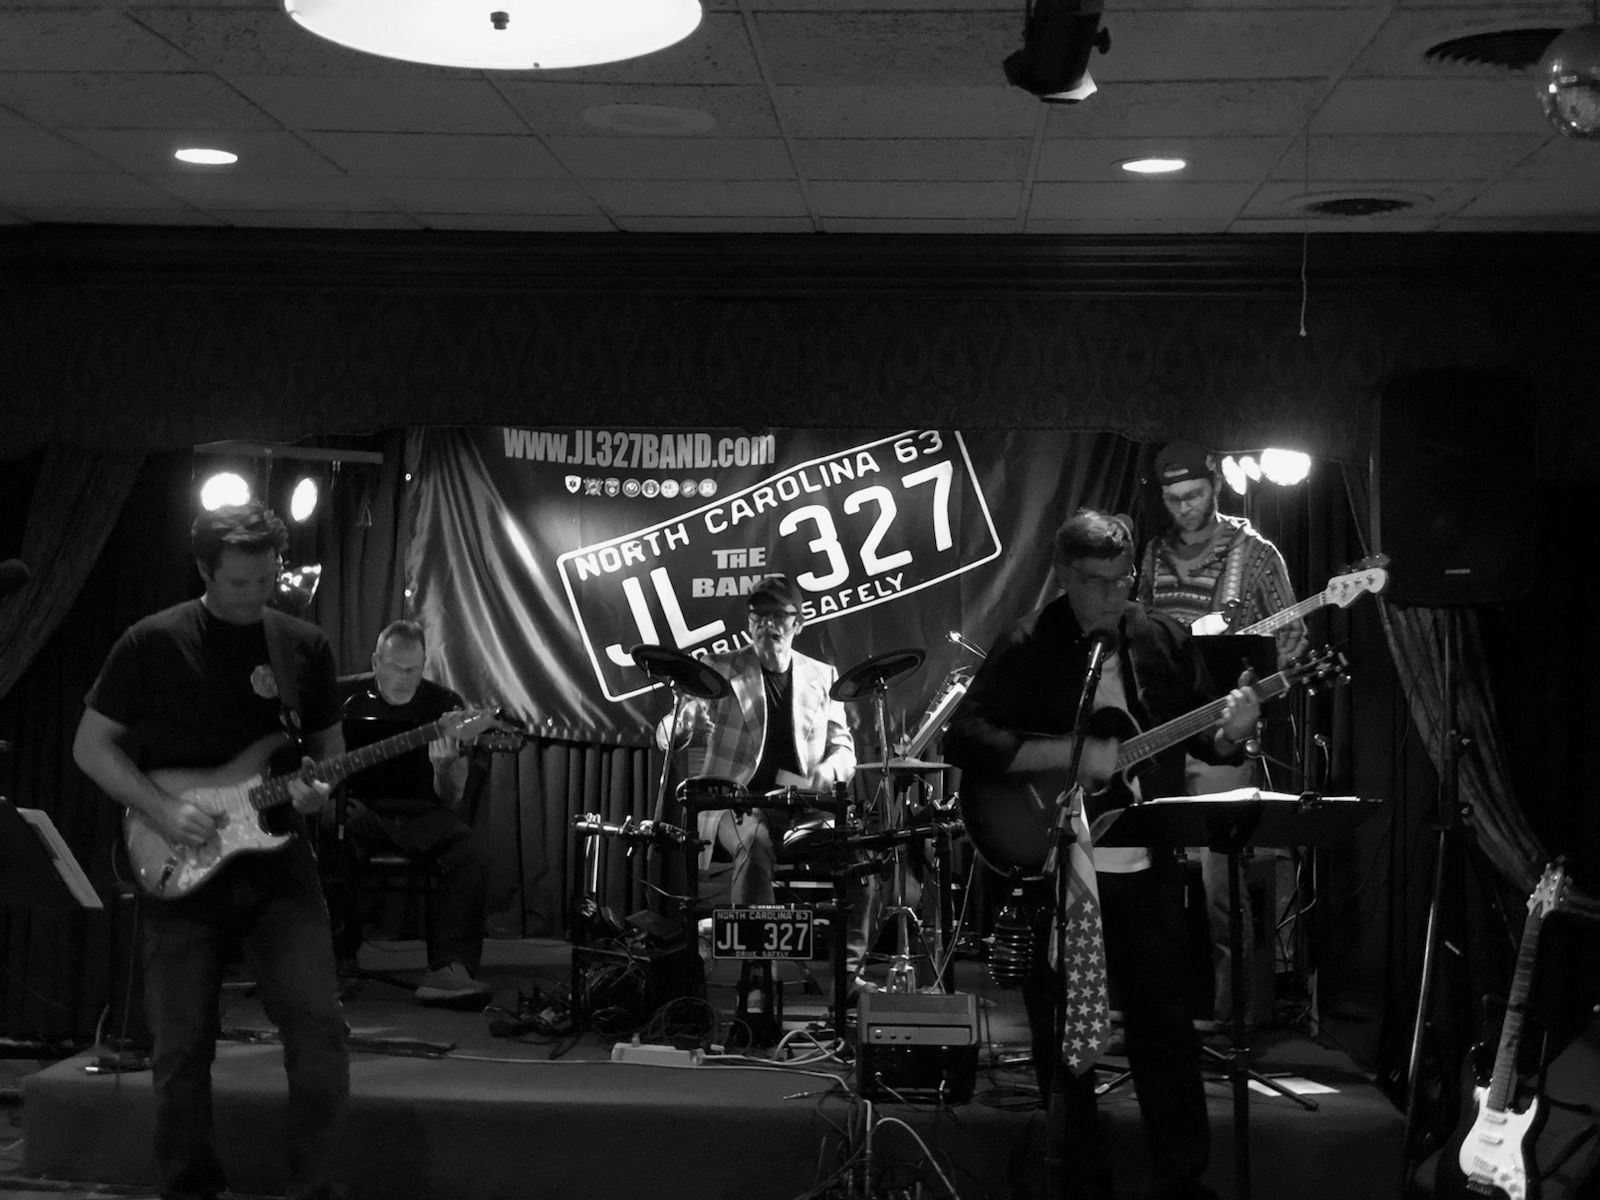 JL327 LIve on stage in Cincinnati Ohio   playing at Tavern on the Hill